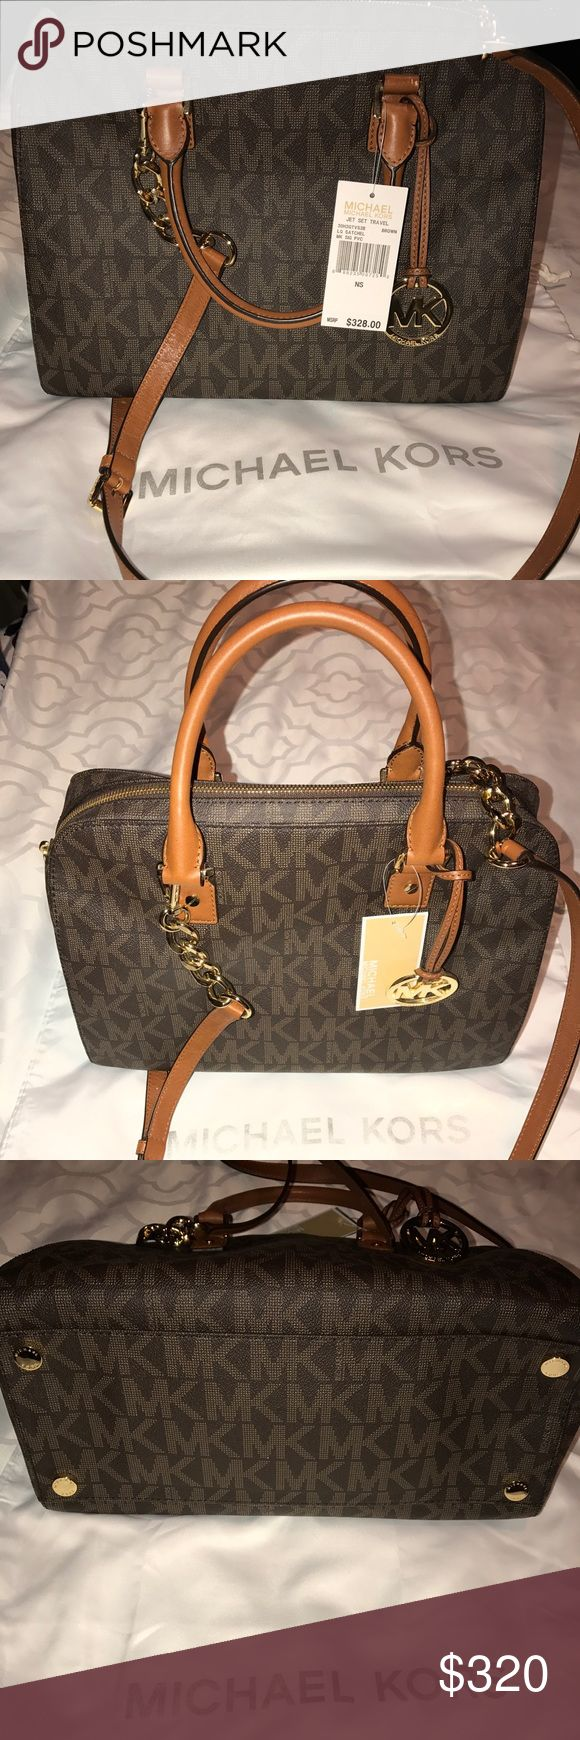 Michael Kors Jet set Travel Michael Kors Large Jet set Travel Brand new with tag! Comes with dust bag Michael Kors Bags Travel Bags